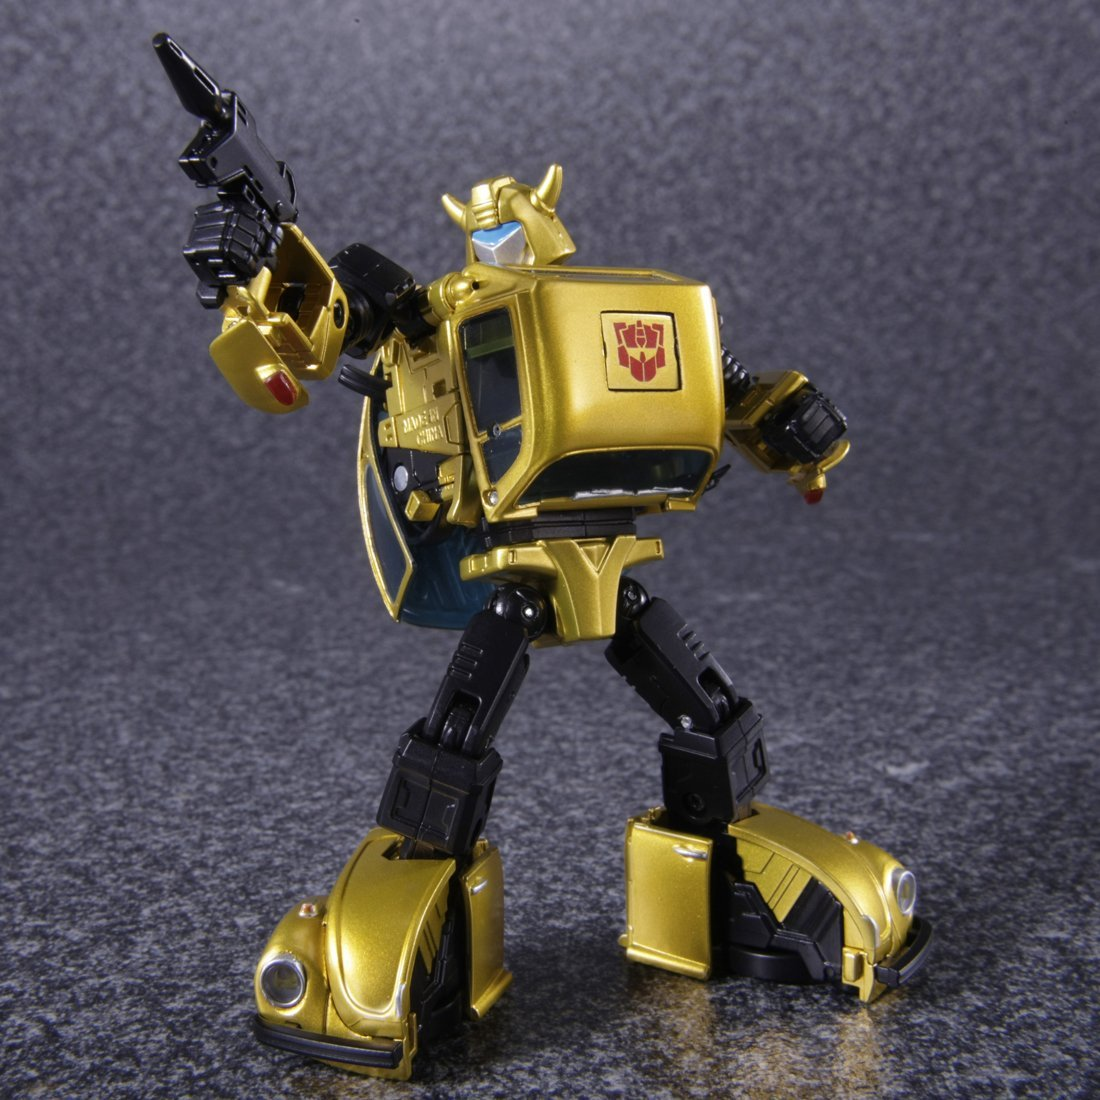 Find great deals on eBay for transformers revenge of the fallen bumblebee toy Shop with confidence